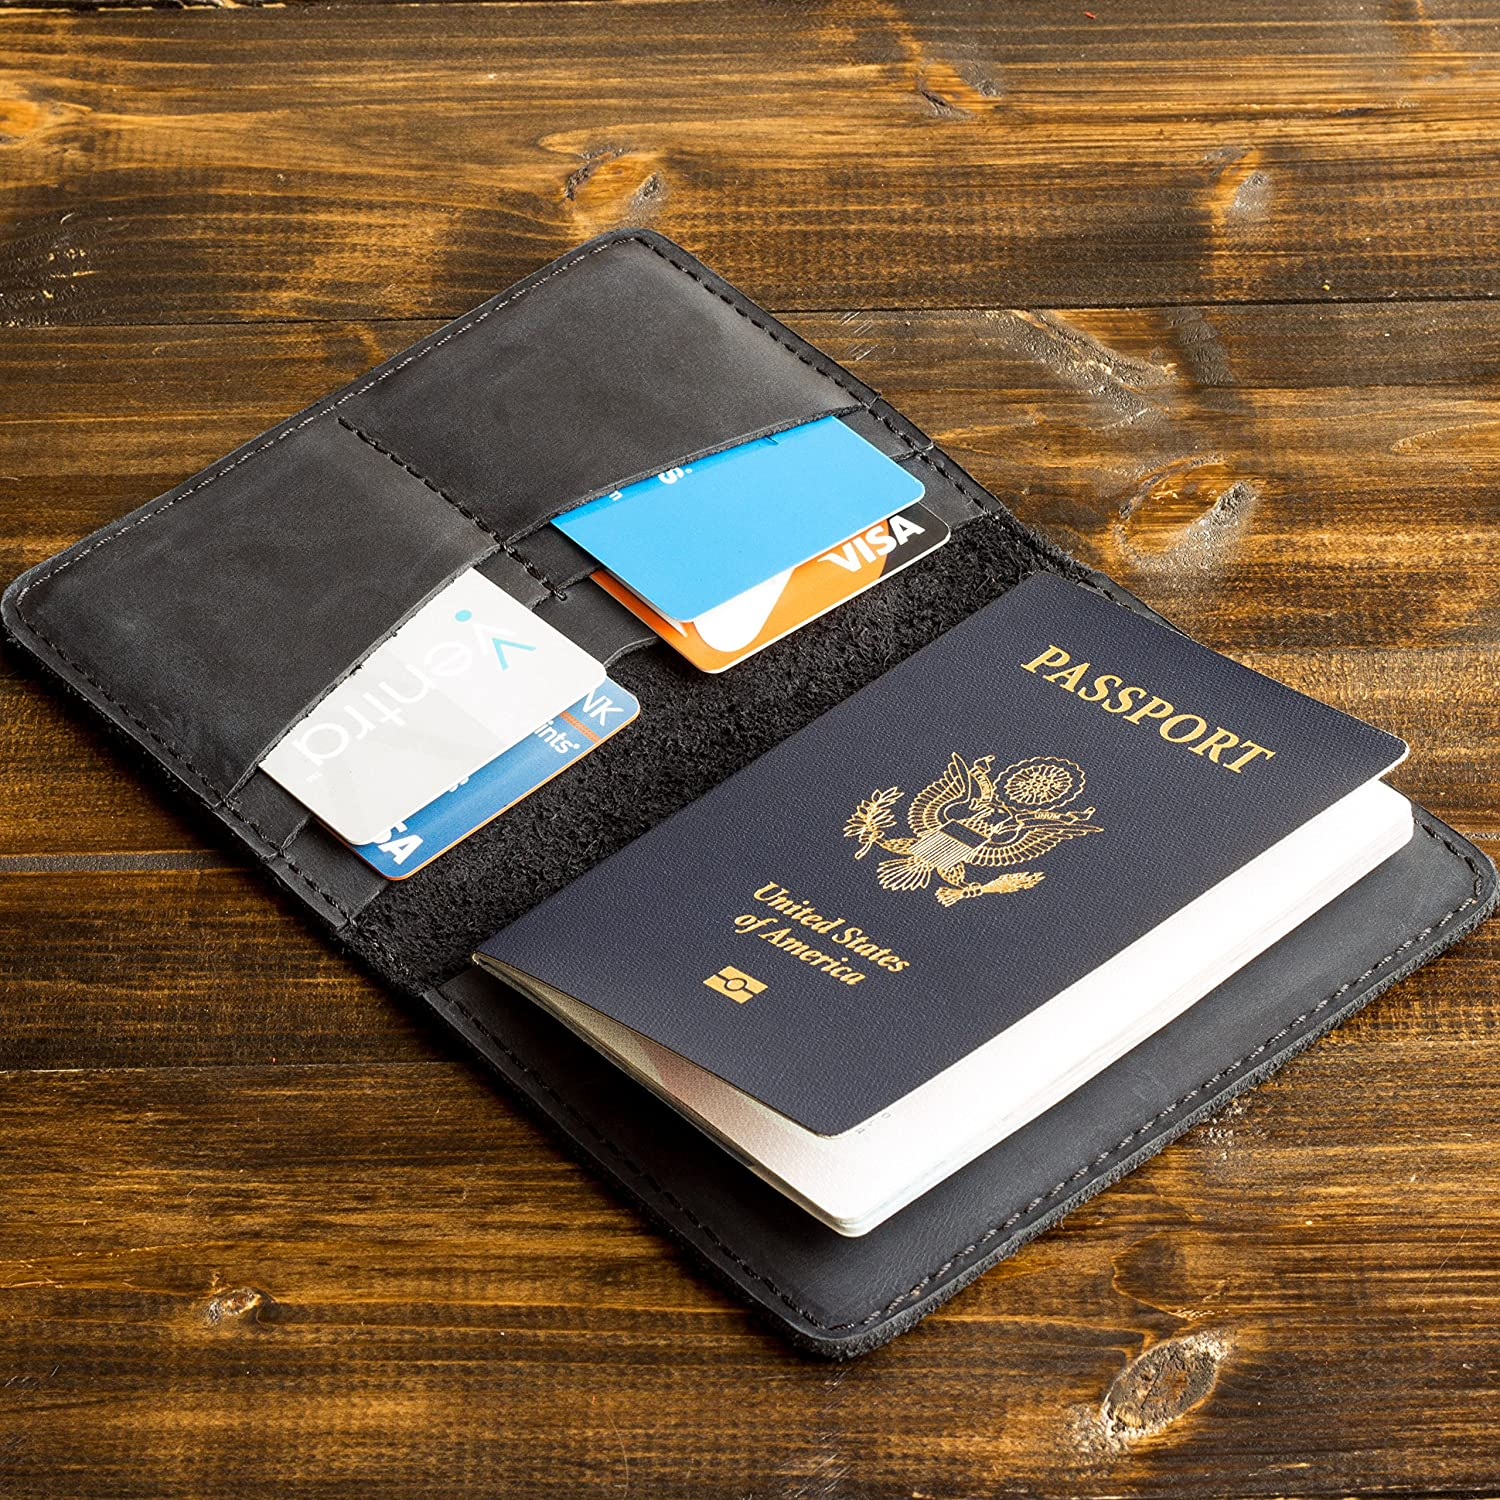 Pegai Passport Wallet, Distressed Leather Travel Wallet, Handcrafted Soft Leather Passport Holder, Rustic Passport Cover - Pike Charcoal Black